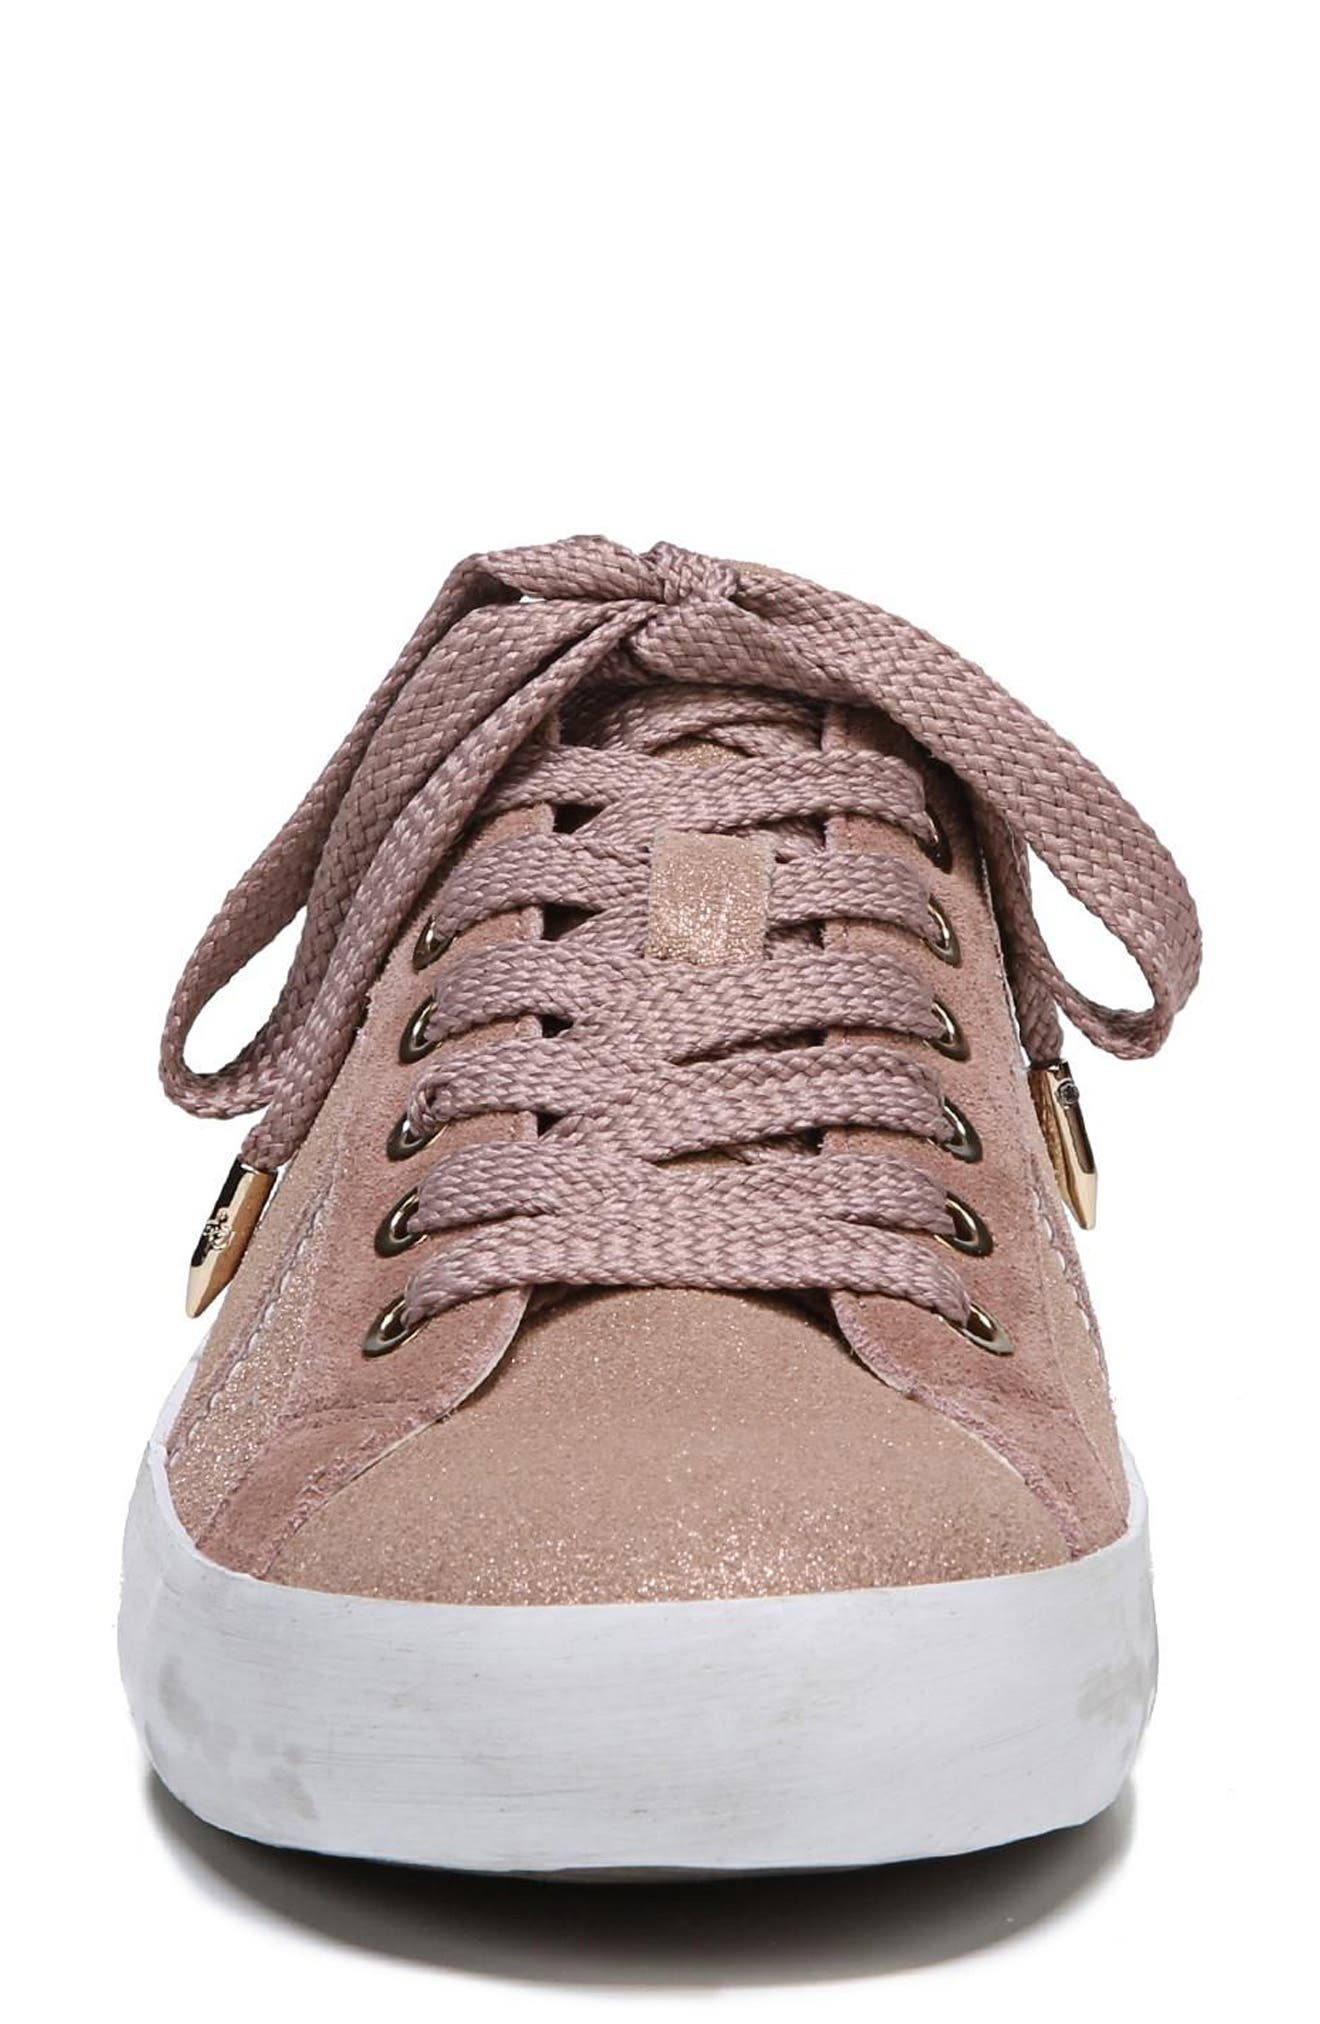 Baylee Sneaker,                             Alternate thumbnail 5, color,                             Blush Suede